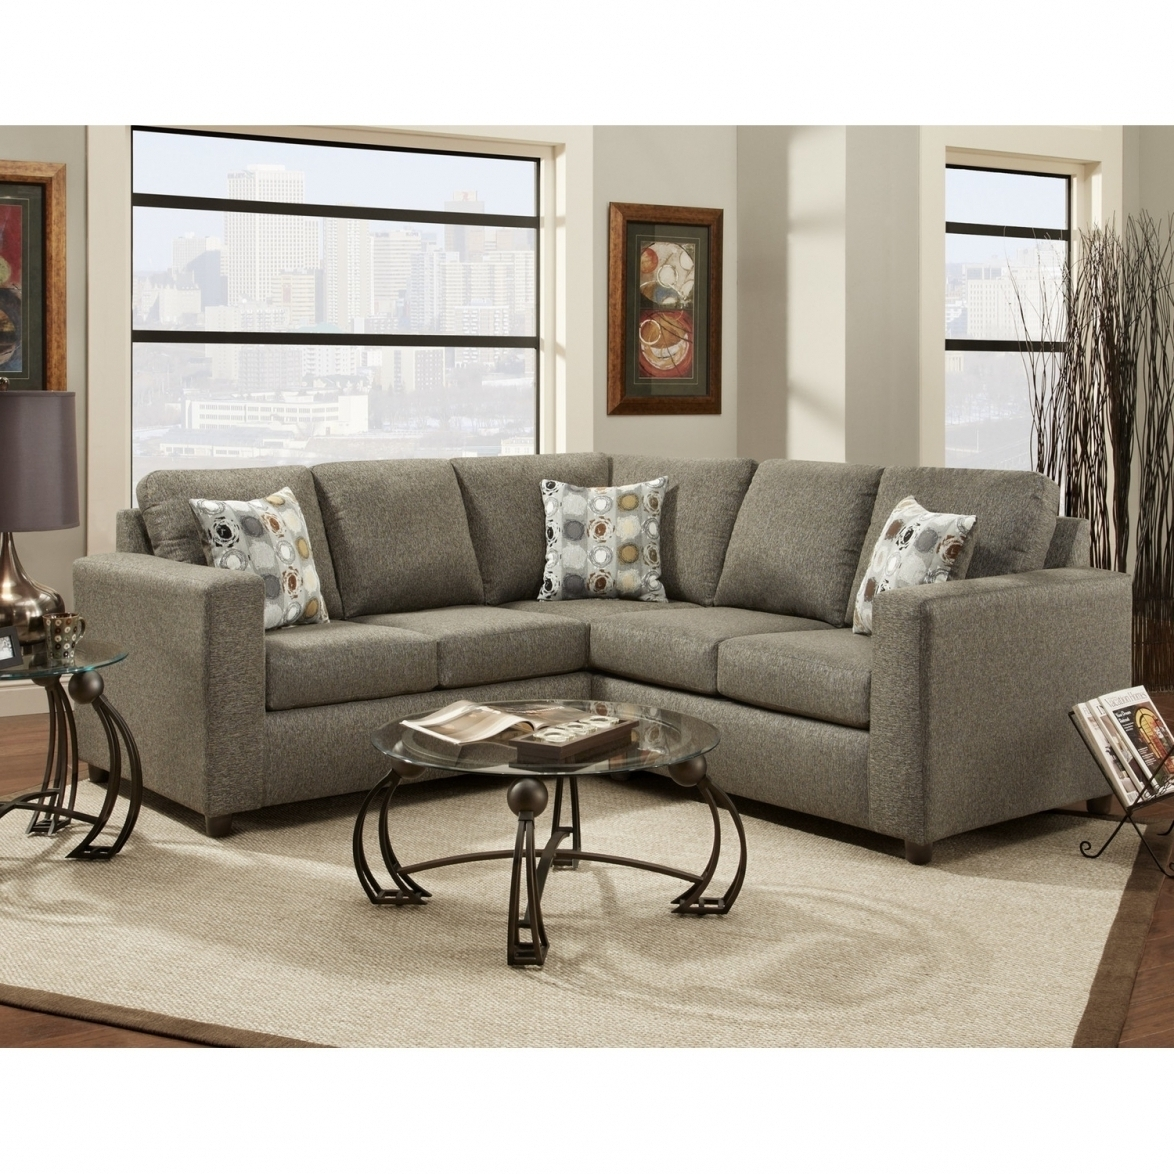 Most Popular Jacksonville Fl Sectional Sofas Within Photos Sectional Sofas Jacksonville Fl – Buildsimplehome (View 15 of 20)